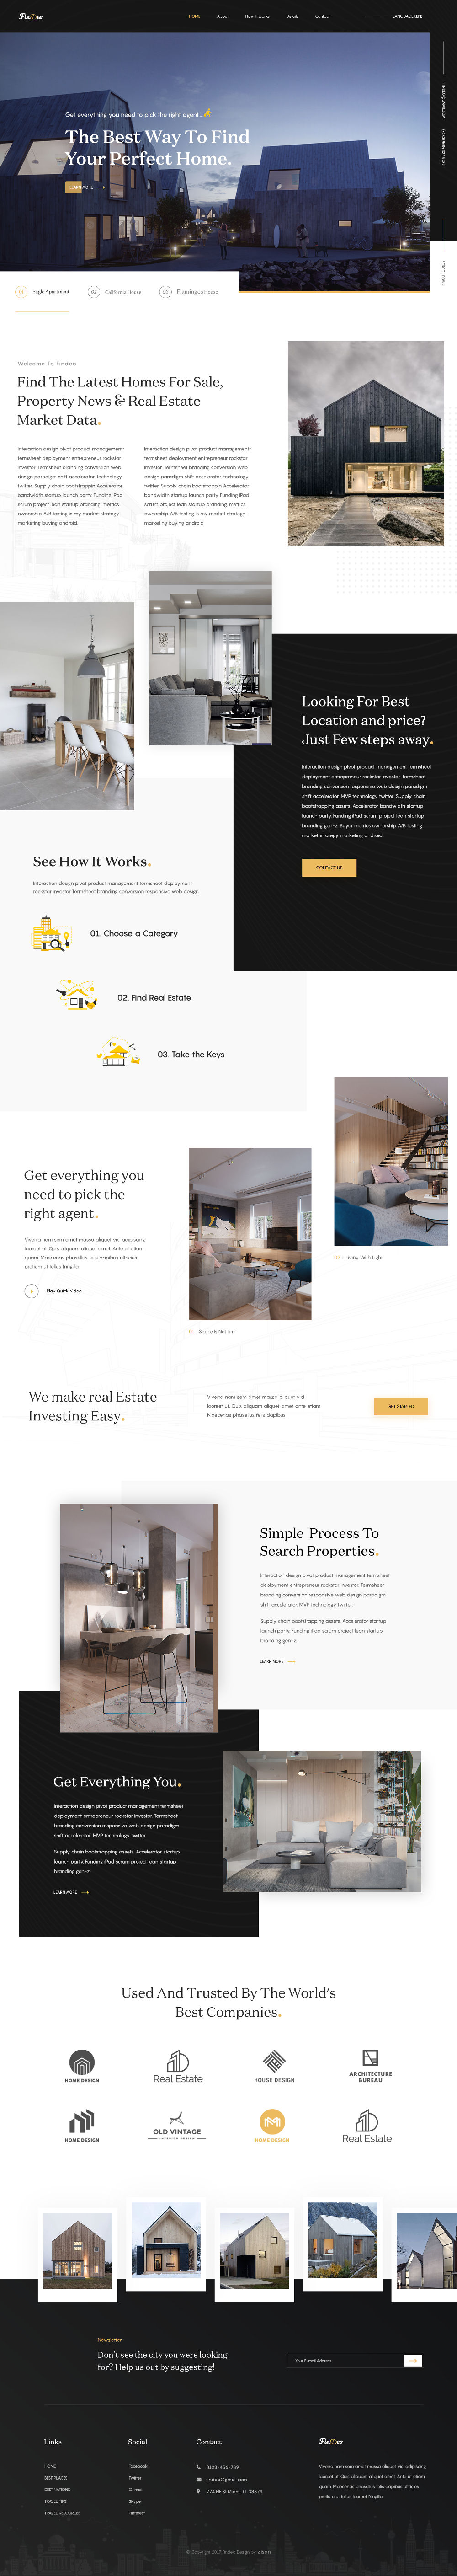 FinDeo Free Real Estate Landing Page PSD Template OmahPSD - Real estate landing page template free